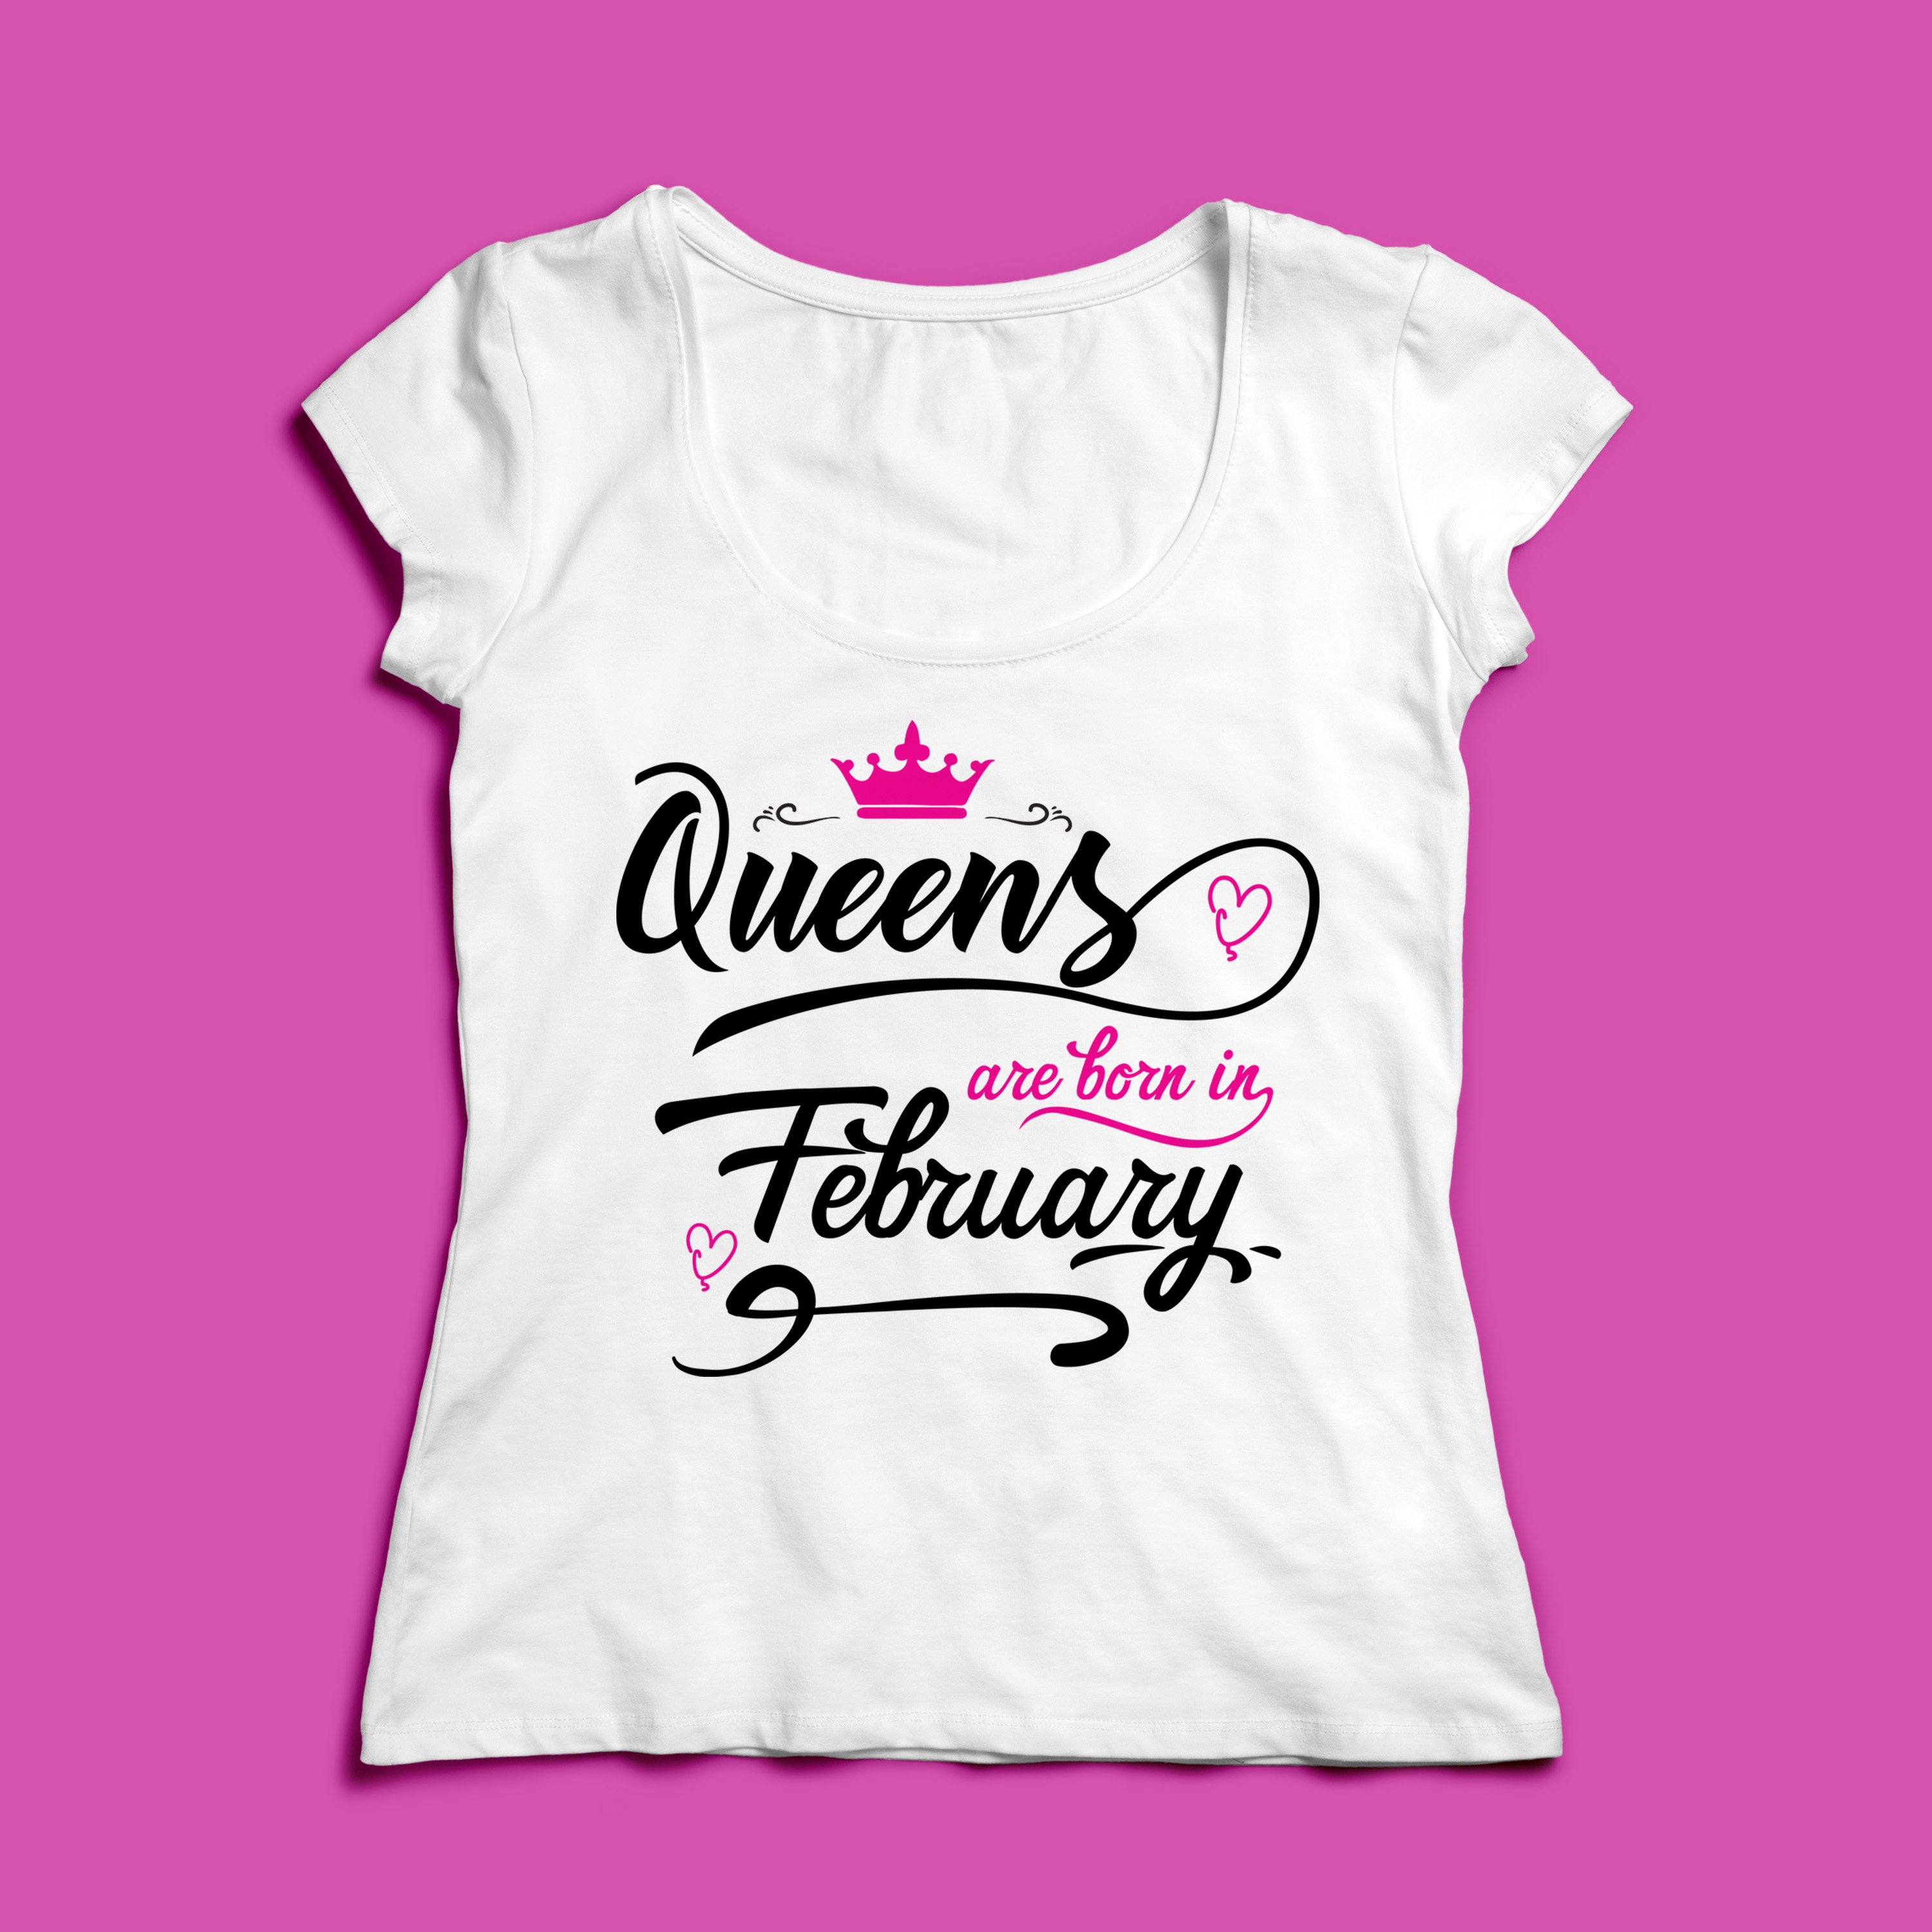 Queens are born in ... Every 12 months Svg,Dxf,Png,Jpg,Eps v example image 5